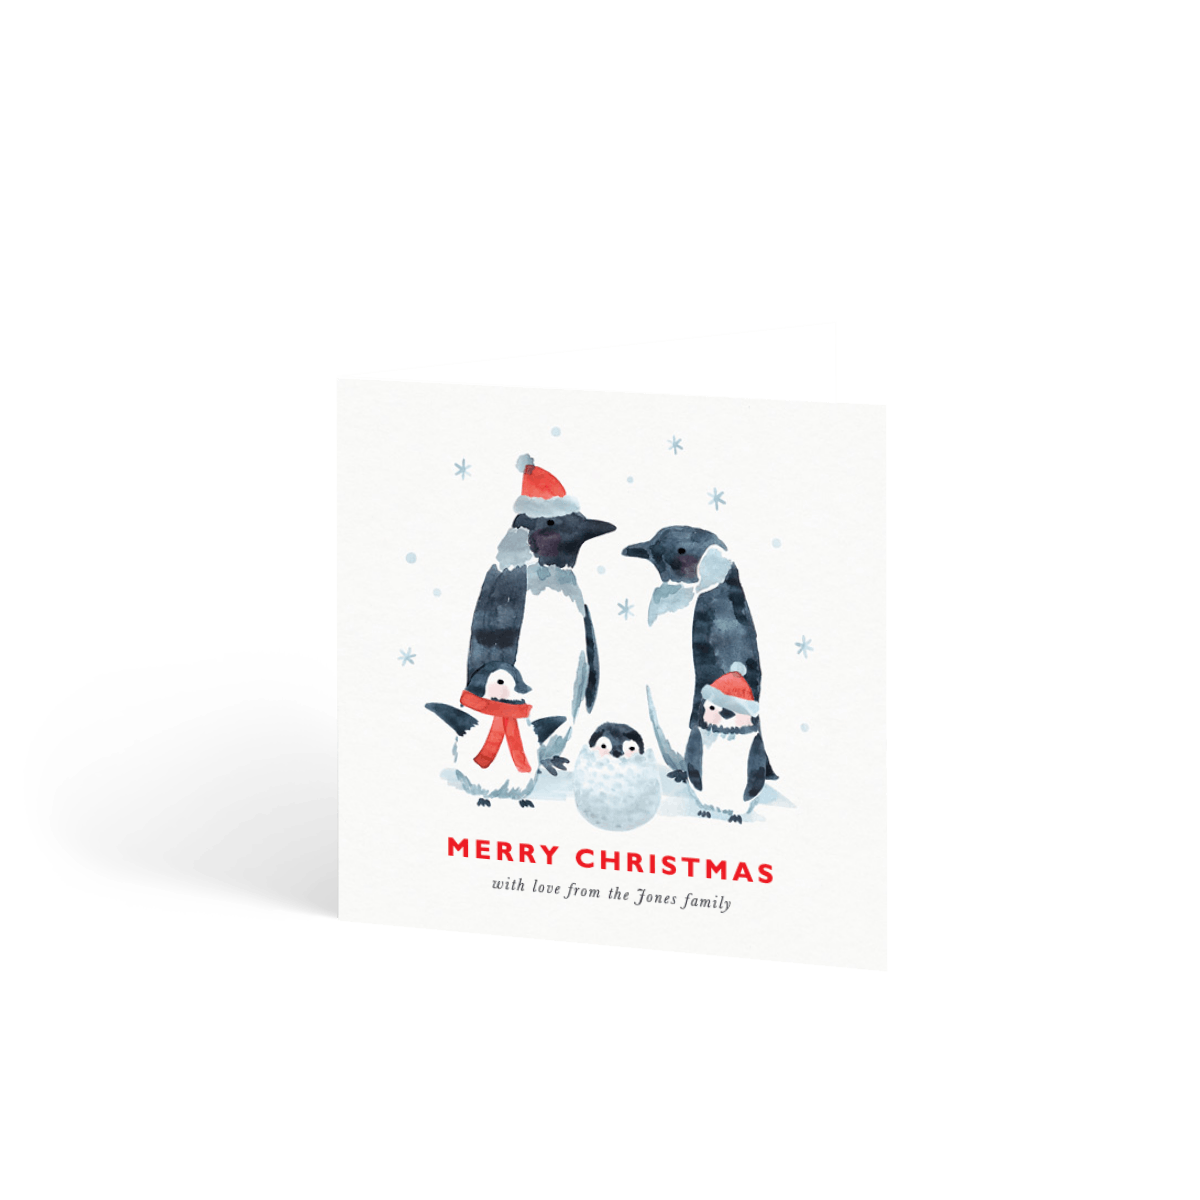 Https%3a%2f%2fwww.papier.com%2fproduct image%2f92726%2f16%2fpenguin family 23186 front 1573646017.png?ixlib=rb 1.1